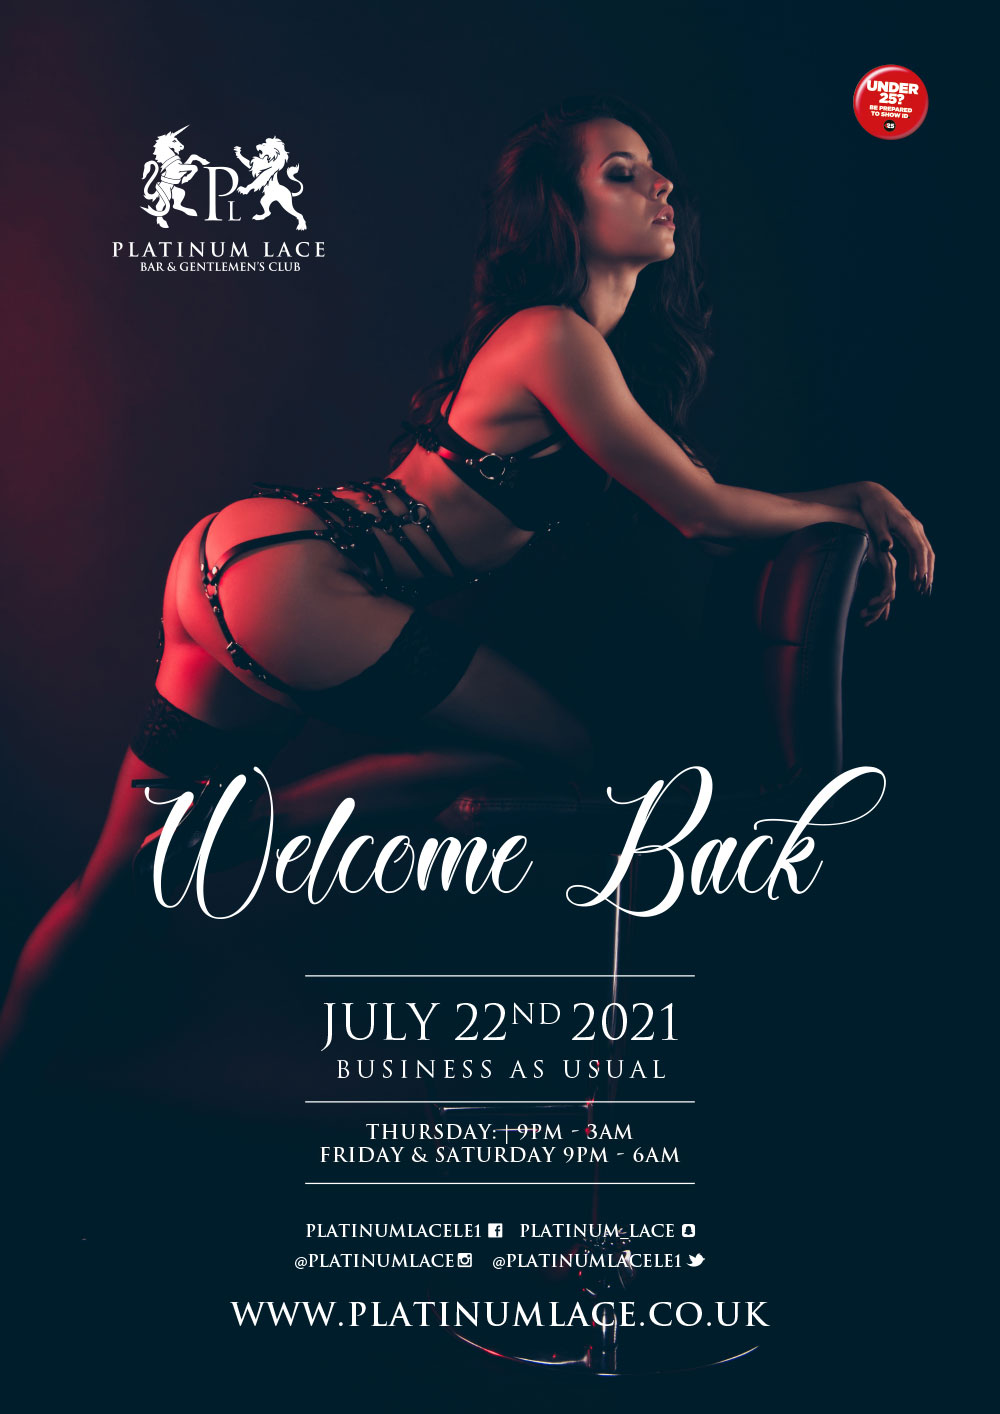 Full reopening on July 22nd at platinum lace leicester